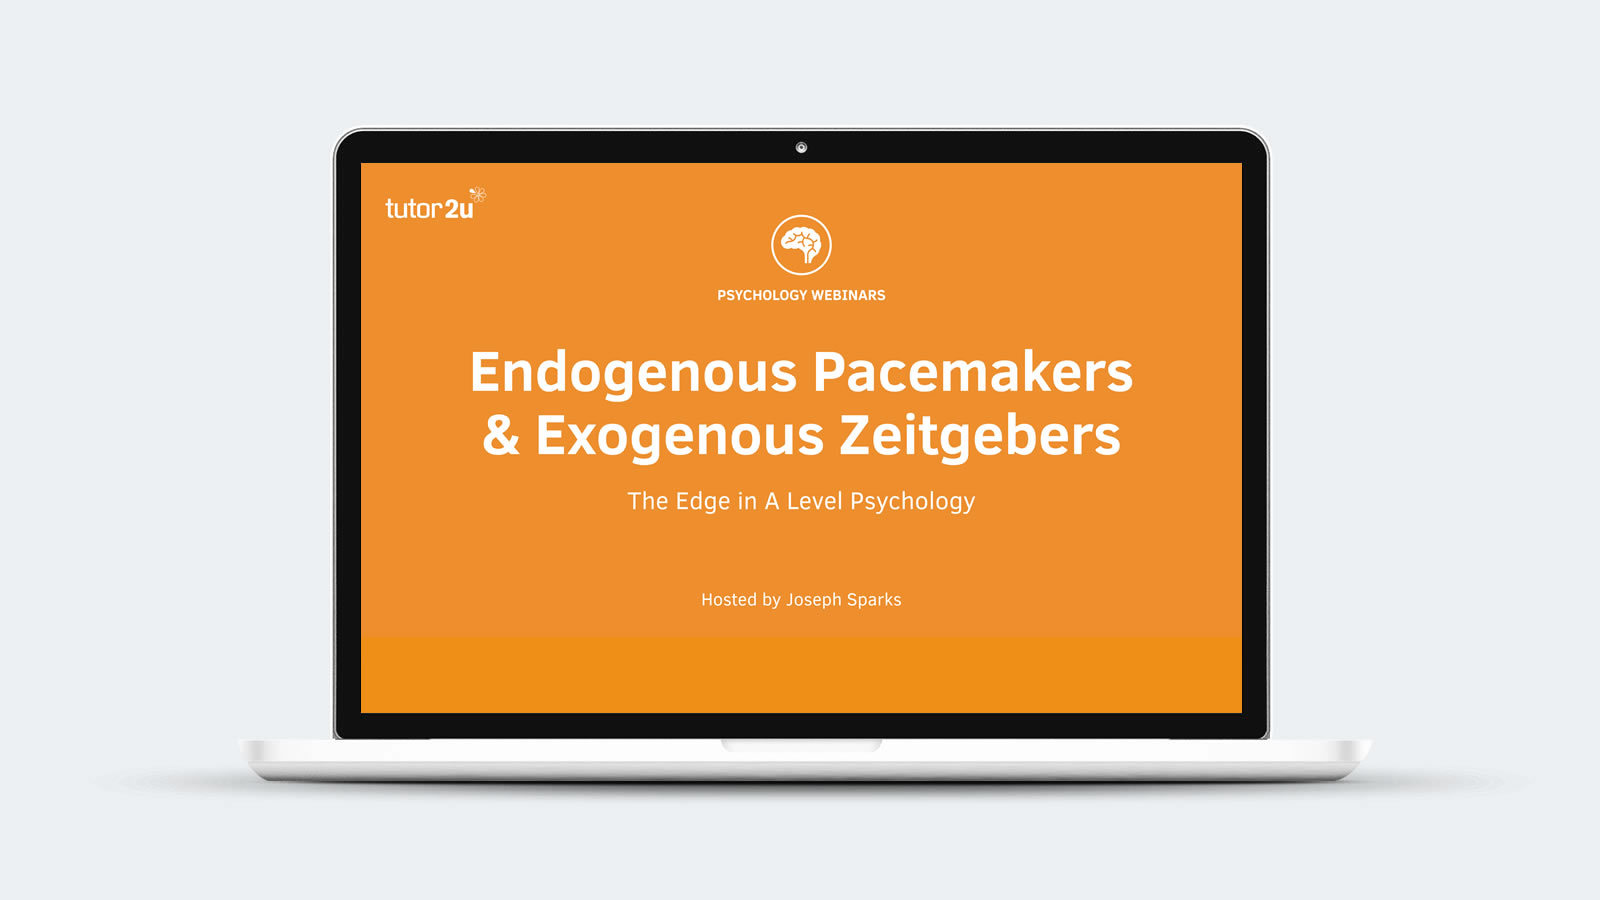 PSYA    Biorhythms and sleep   Endogenous Pacemakers and Exogenous     SlideShare Buy research papers online cheap discuss the role of endogenous pacemakers  in the control of circadian